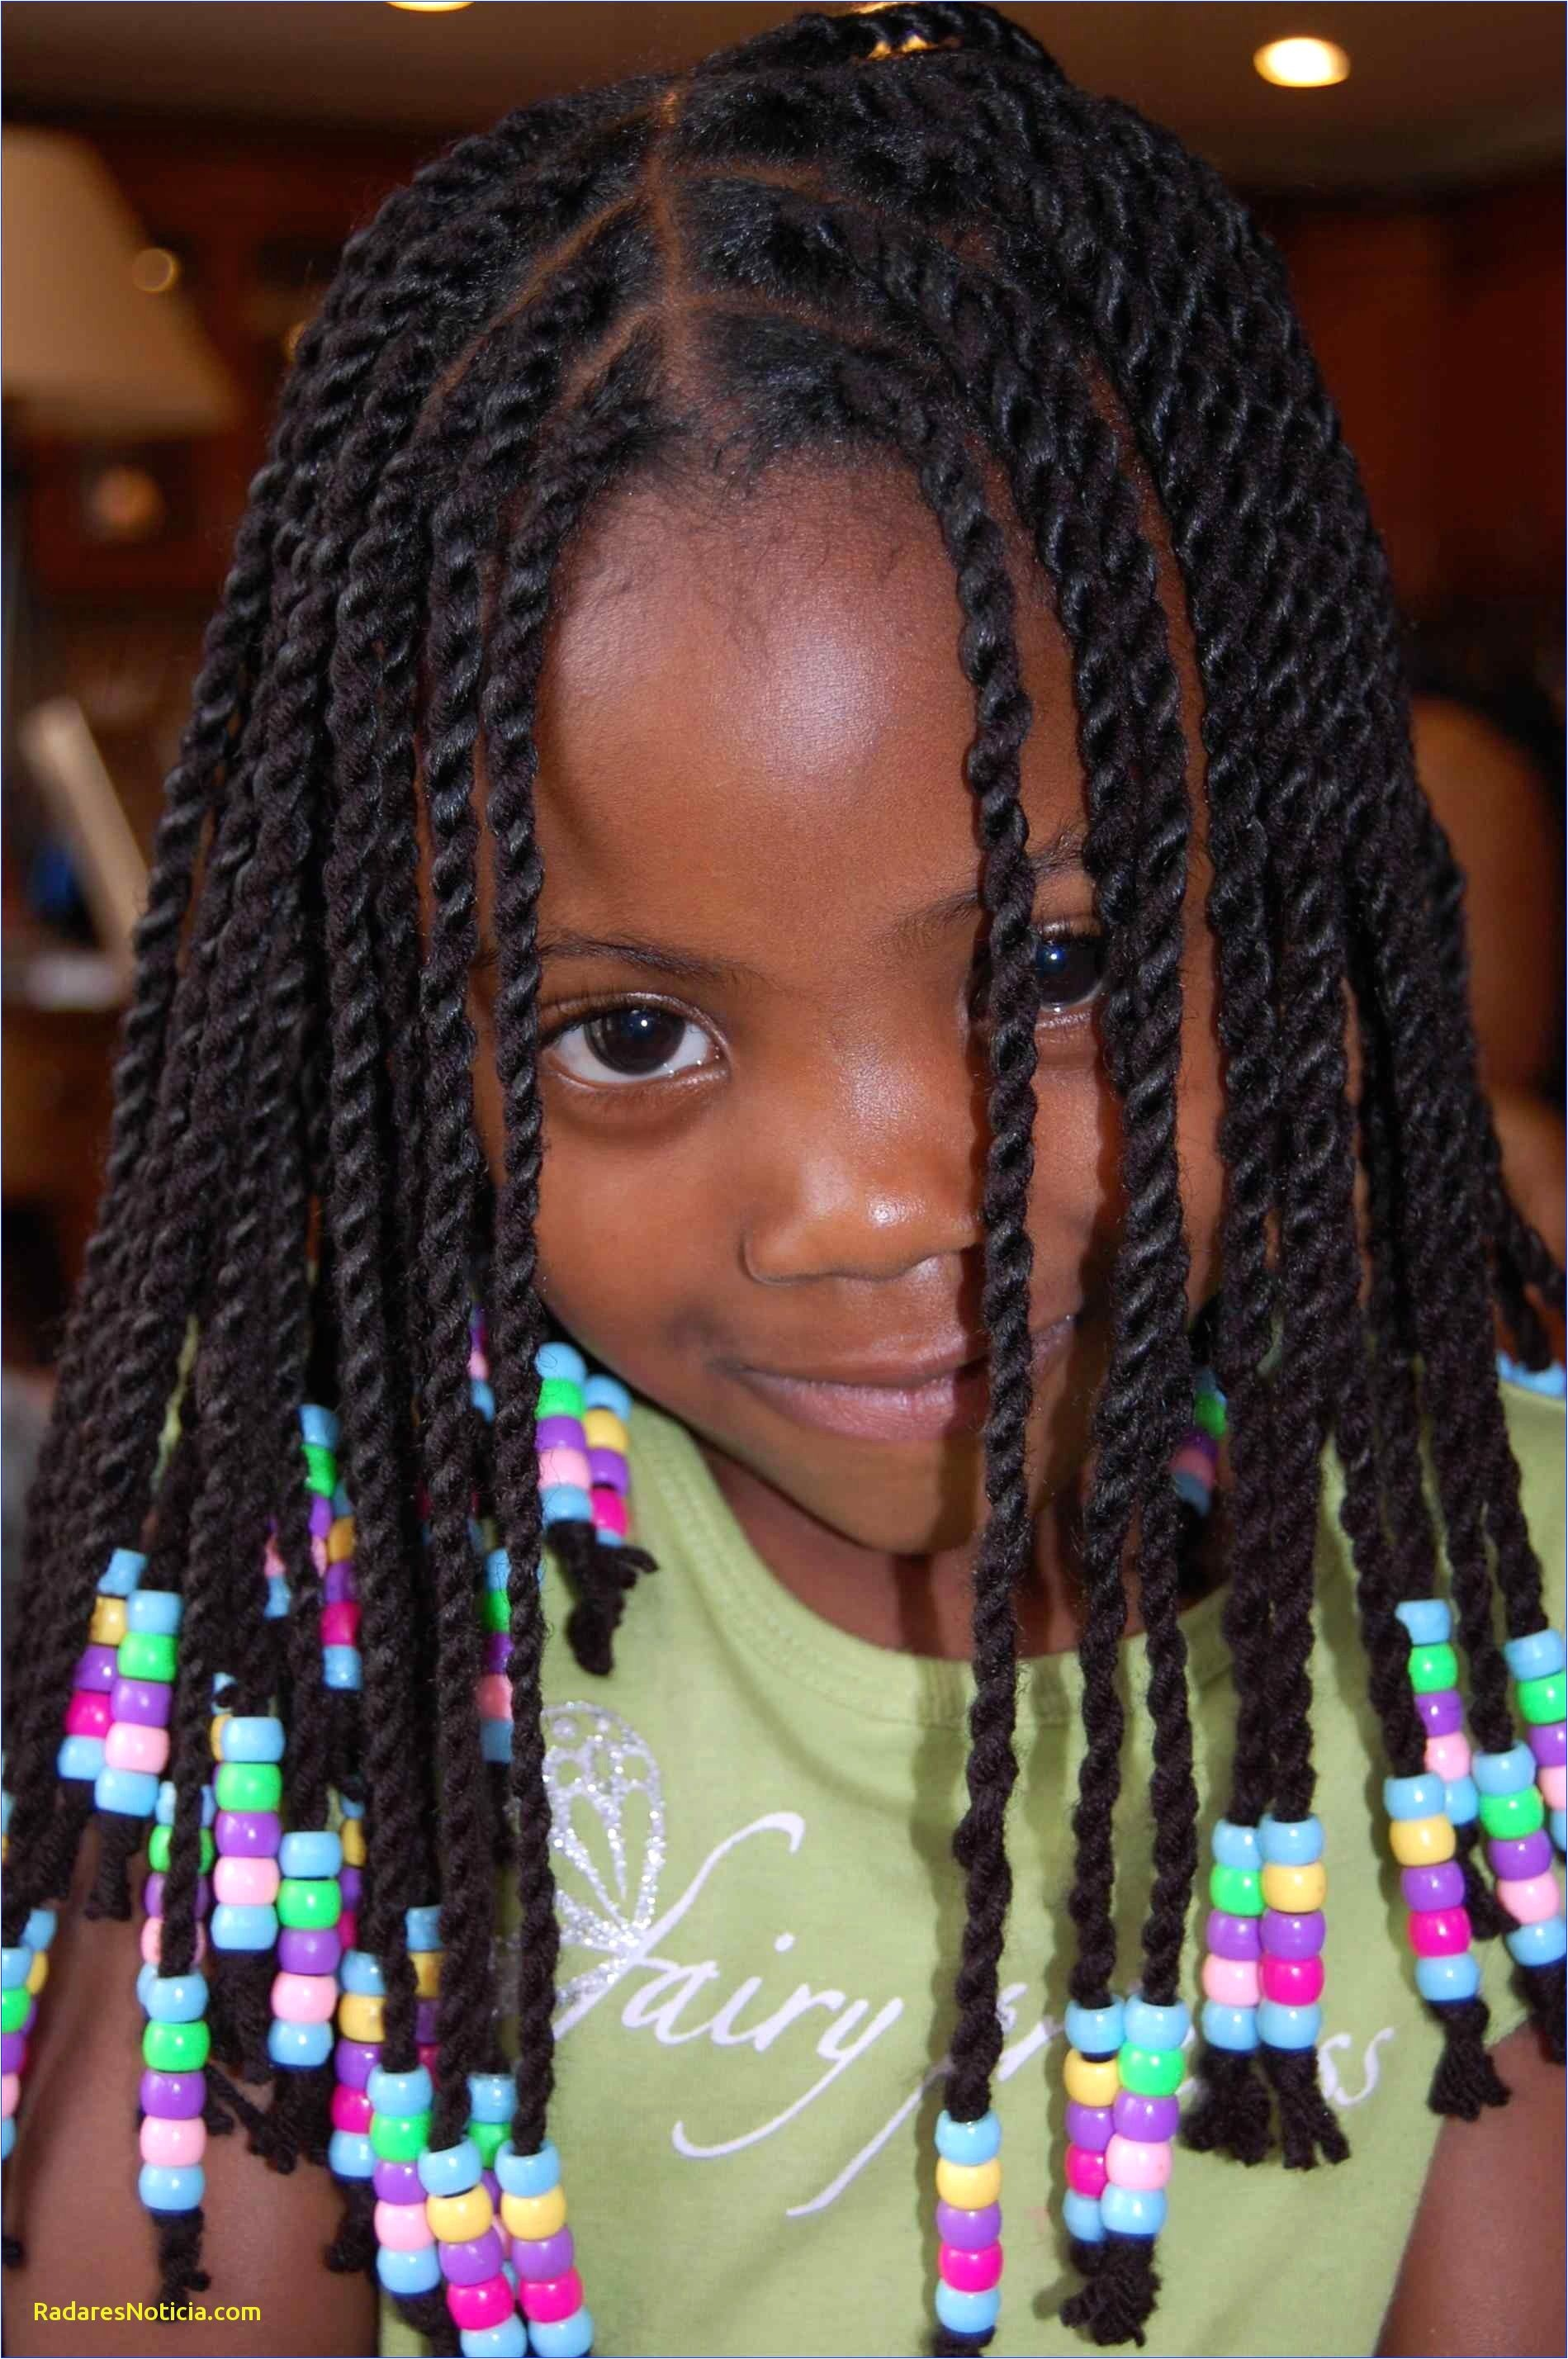 Braided Ponytail Hairstyles for Black Hair Fresh Black Children Ponytail Hairstyles Hairstyles Ideas